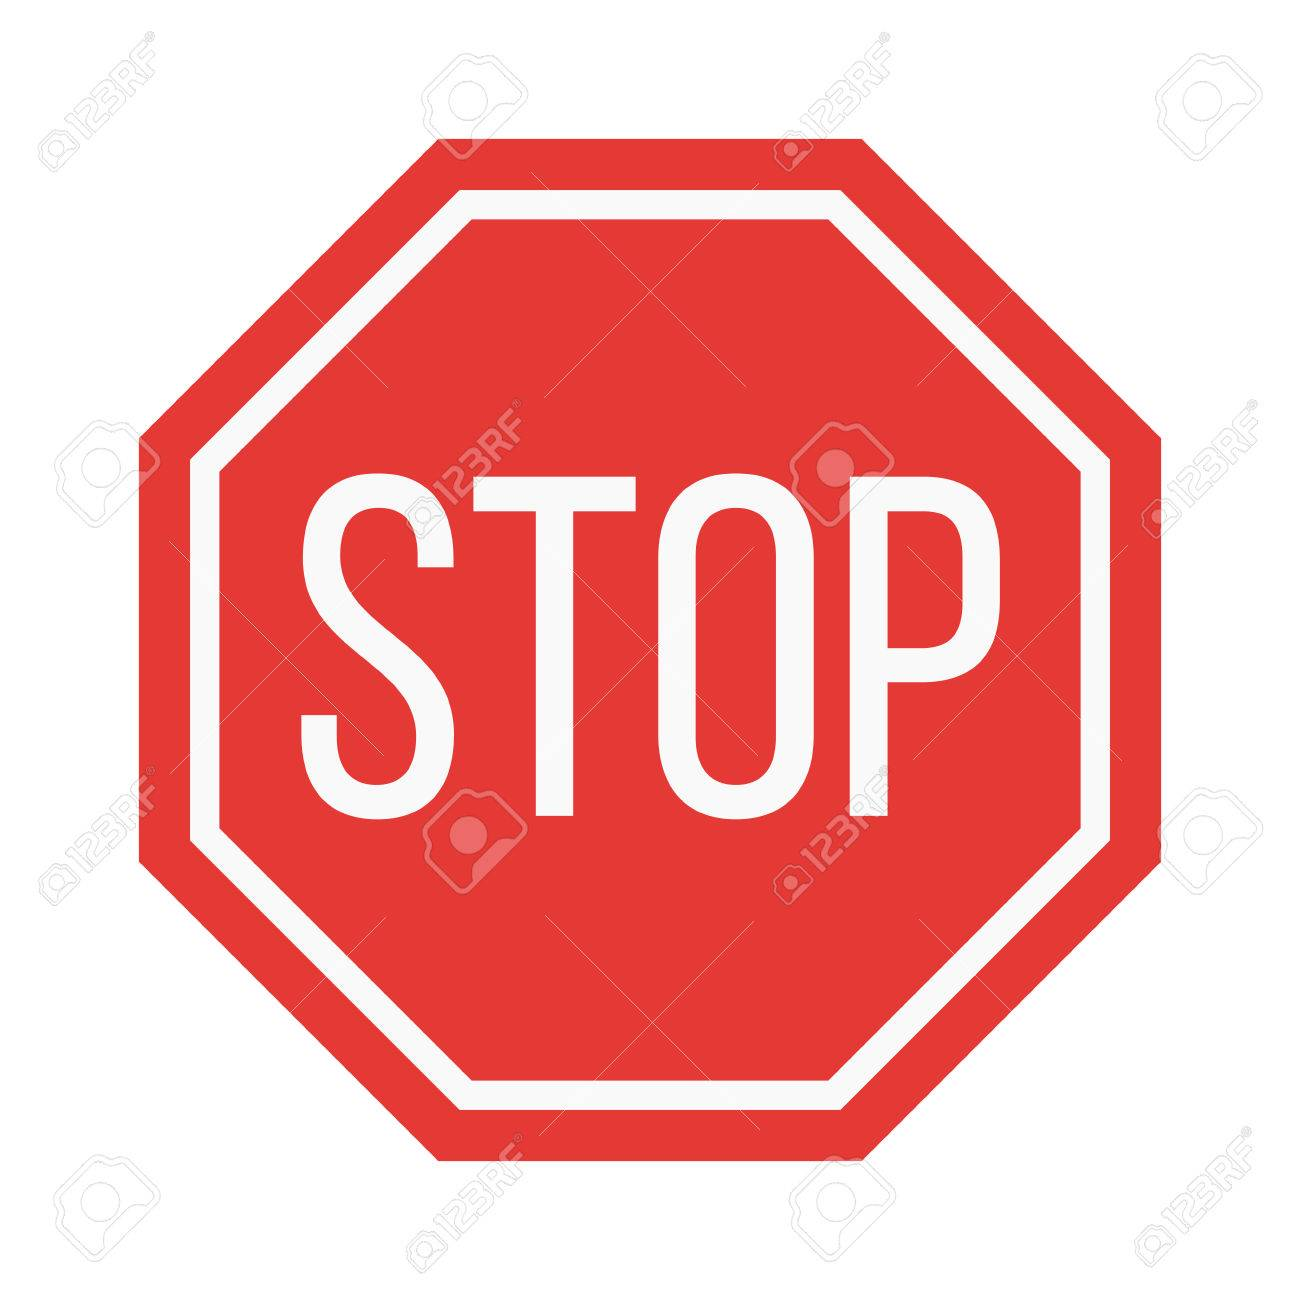 prohibition stop sign vector illustration warning danger symbol rh 123rf com stop sign vector file stop sign vector eps